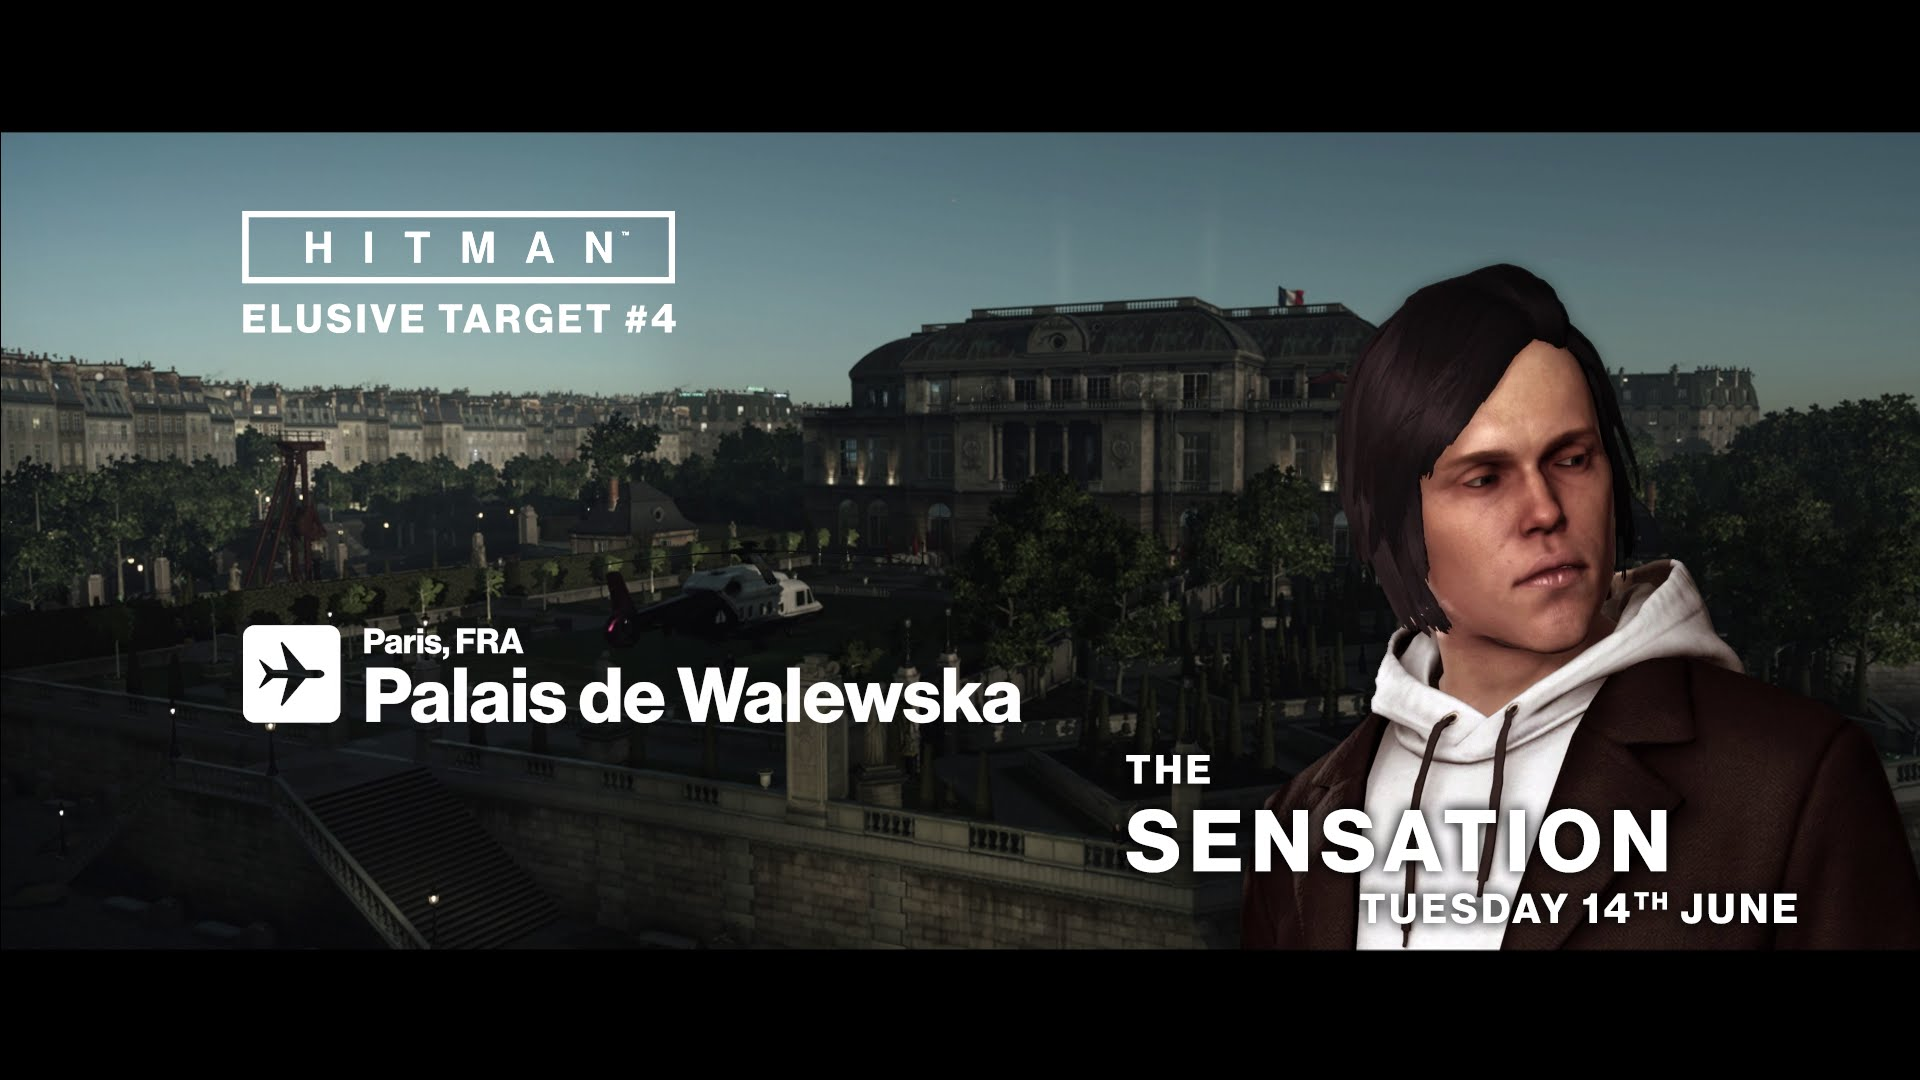 HITMAN - Elusive Target #4 - The Sensation